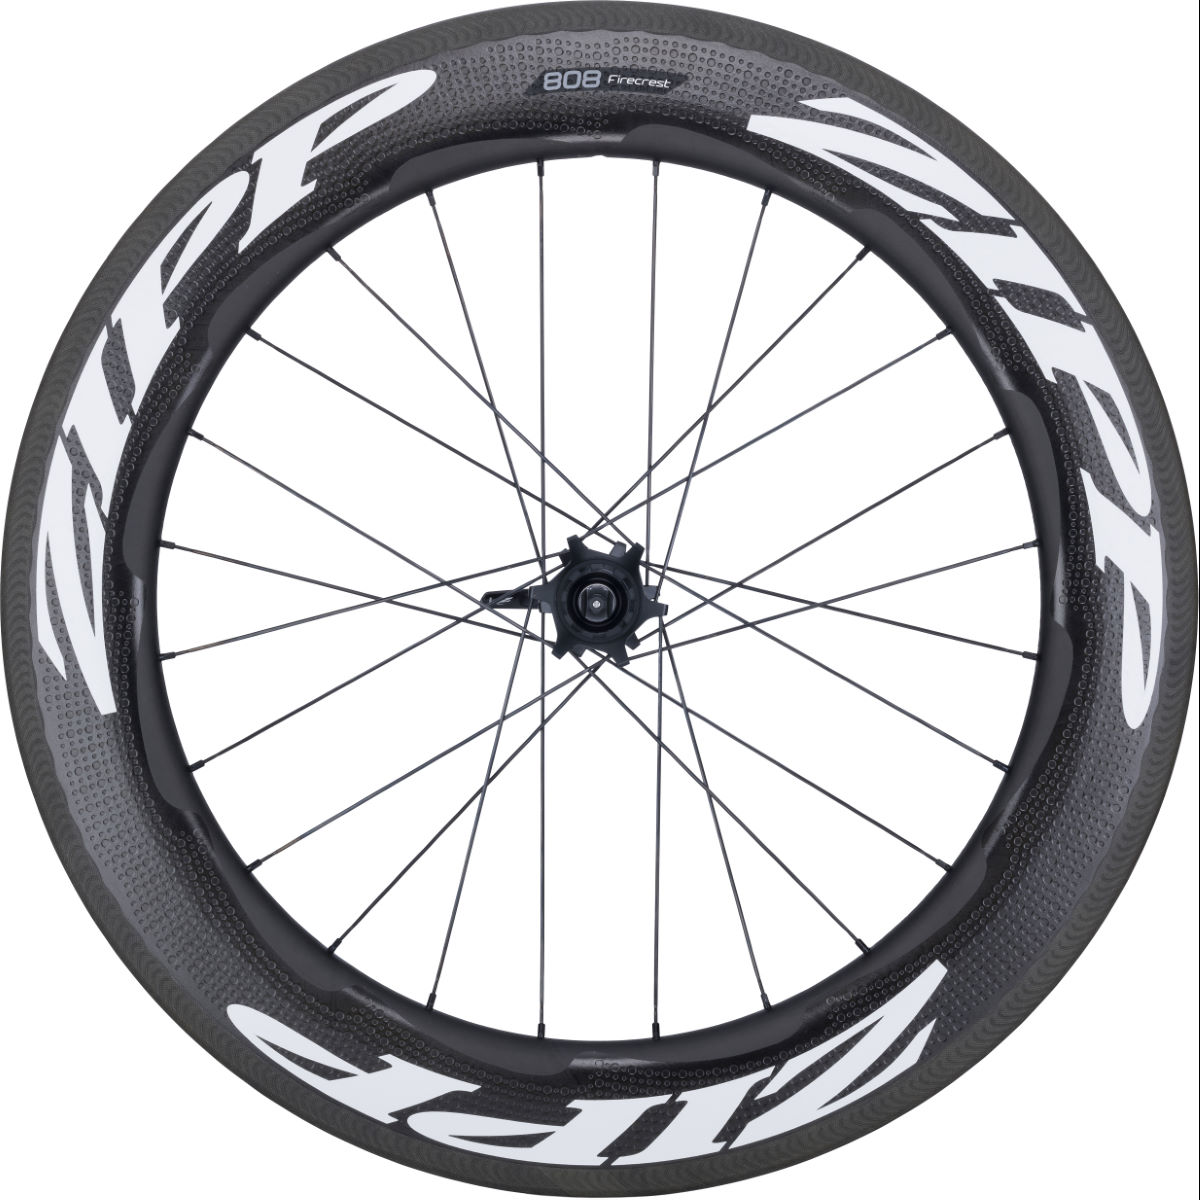 Zipp 808 Carbon Clincher Rear Wheel (700c QR) - Ruedas traseras